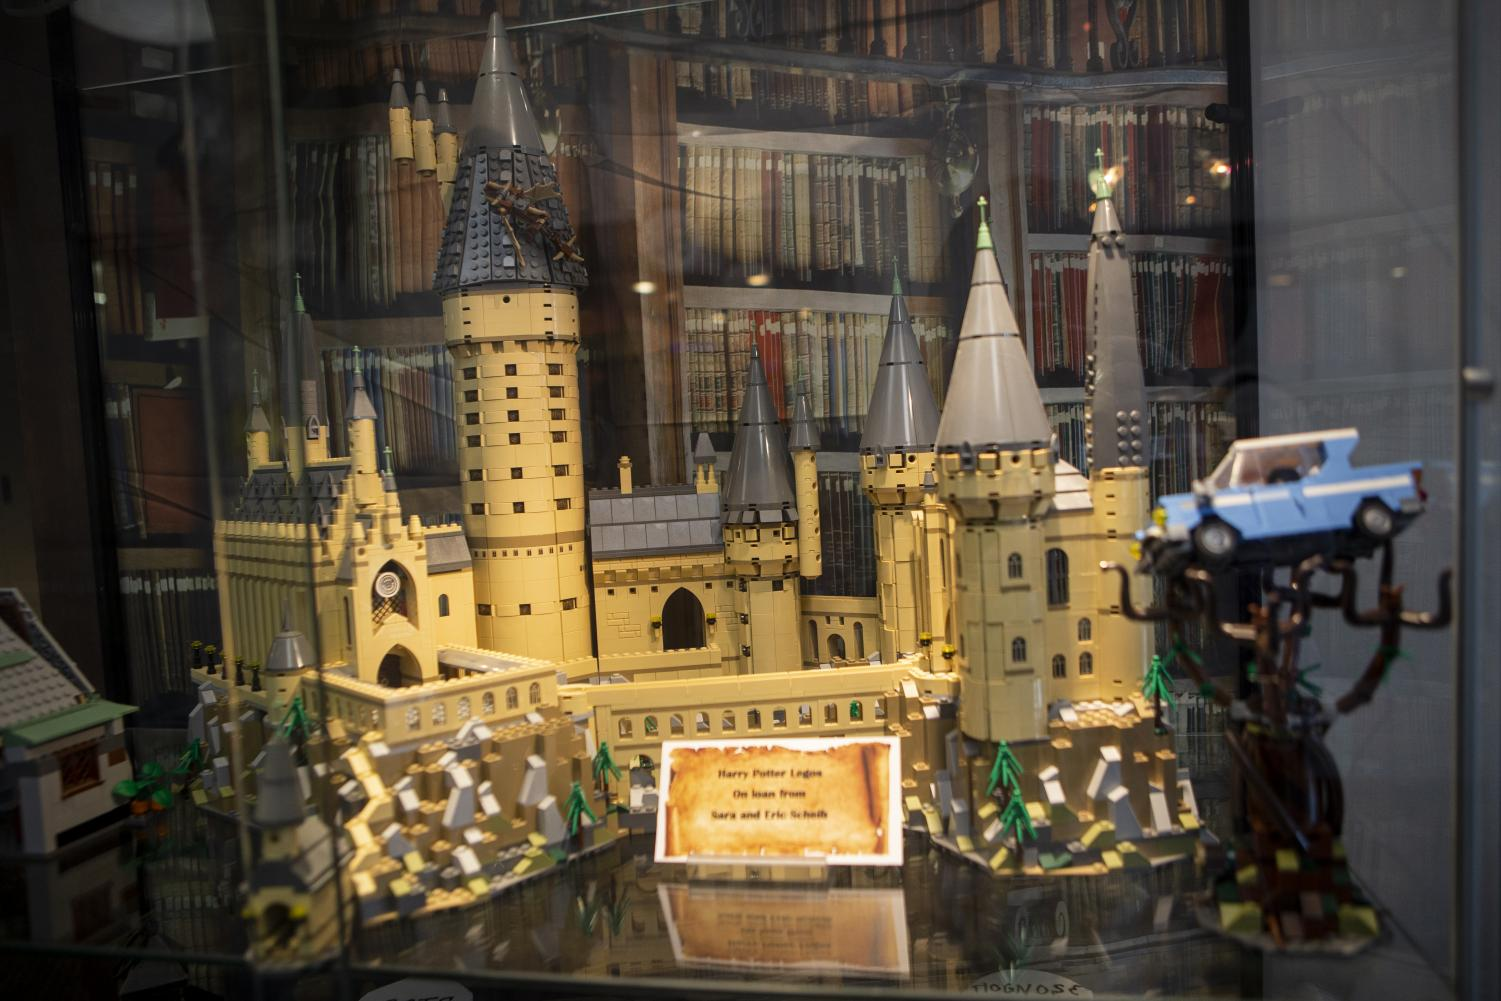 A LEGO version of Hogwarts castle is on display in the Science Library as part of their Harry Potter exhibit. The Harry Potter exhibit's grand opening was held on Monday, October 21, 2019 in the Sciences Library. (Nichole Harris/The Daily Iowan)